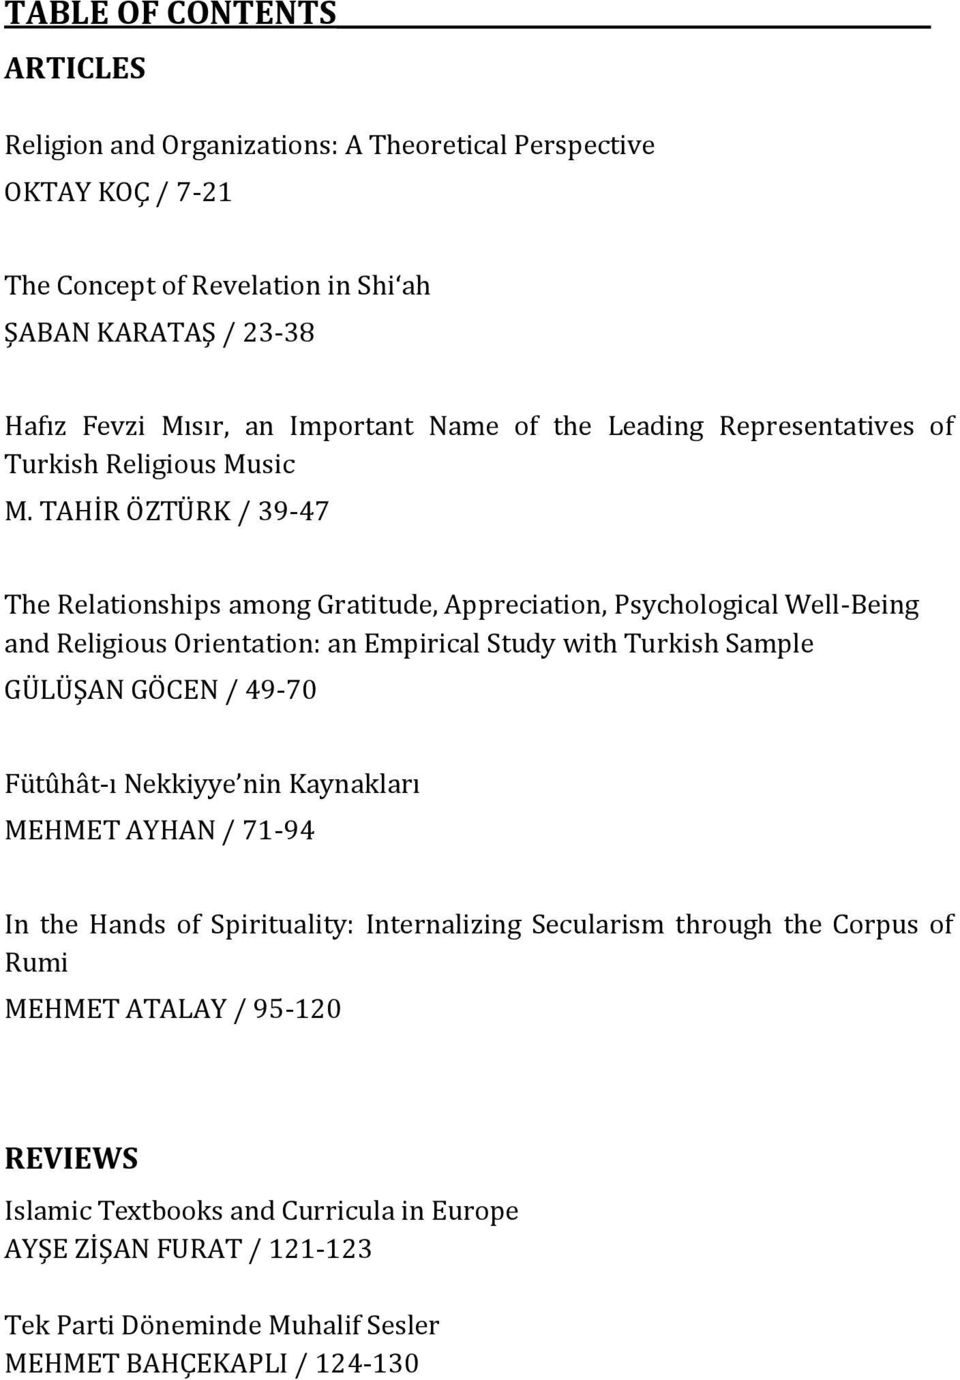 TAHİR ÖZTÜRK / 39-47 The Relationships among Gratitude, Appreciation, Psychological Well-Being and Religious Orientation: an Empirical Study with Turkish Sample GÜLÜŞAN GÖCEN / 49-70